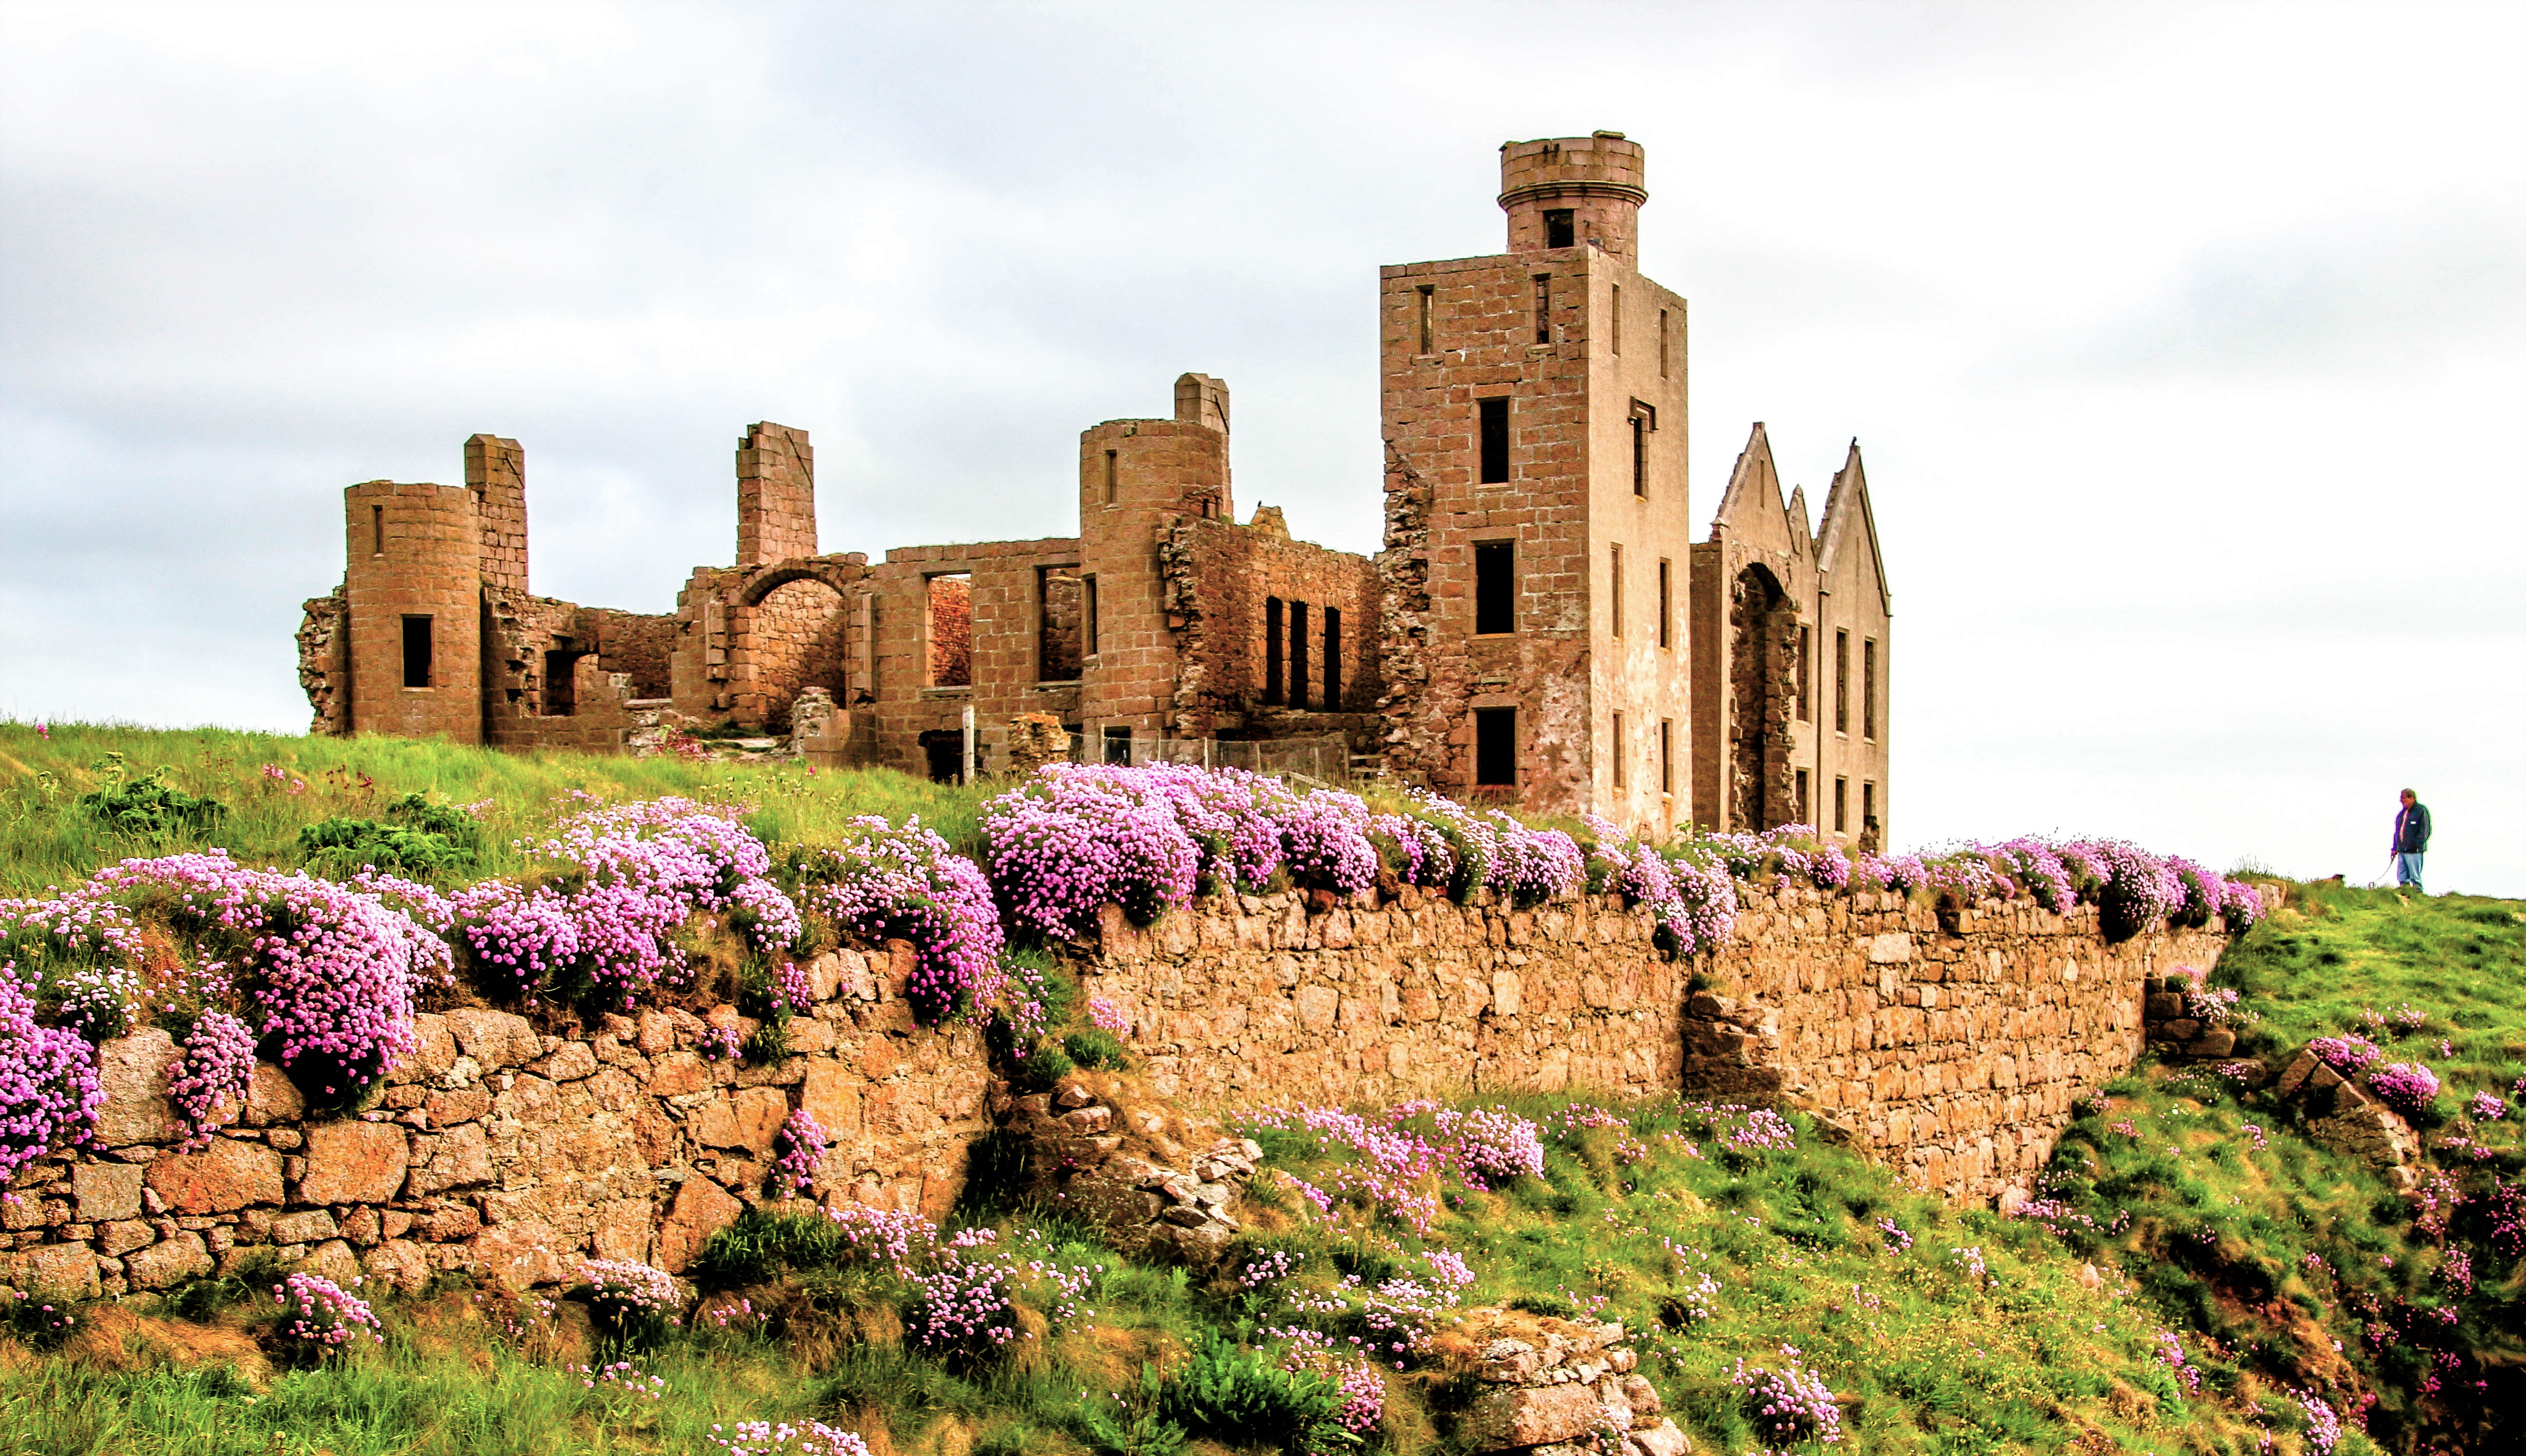 Slains Castle. Photo by Mike Sheperd